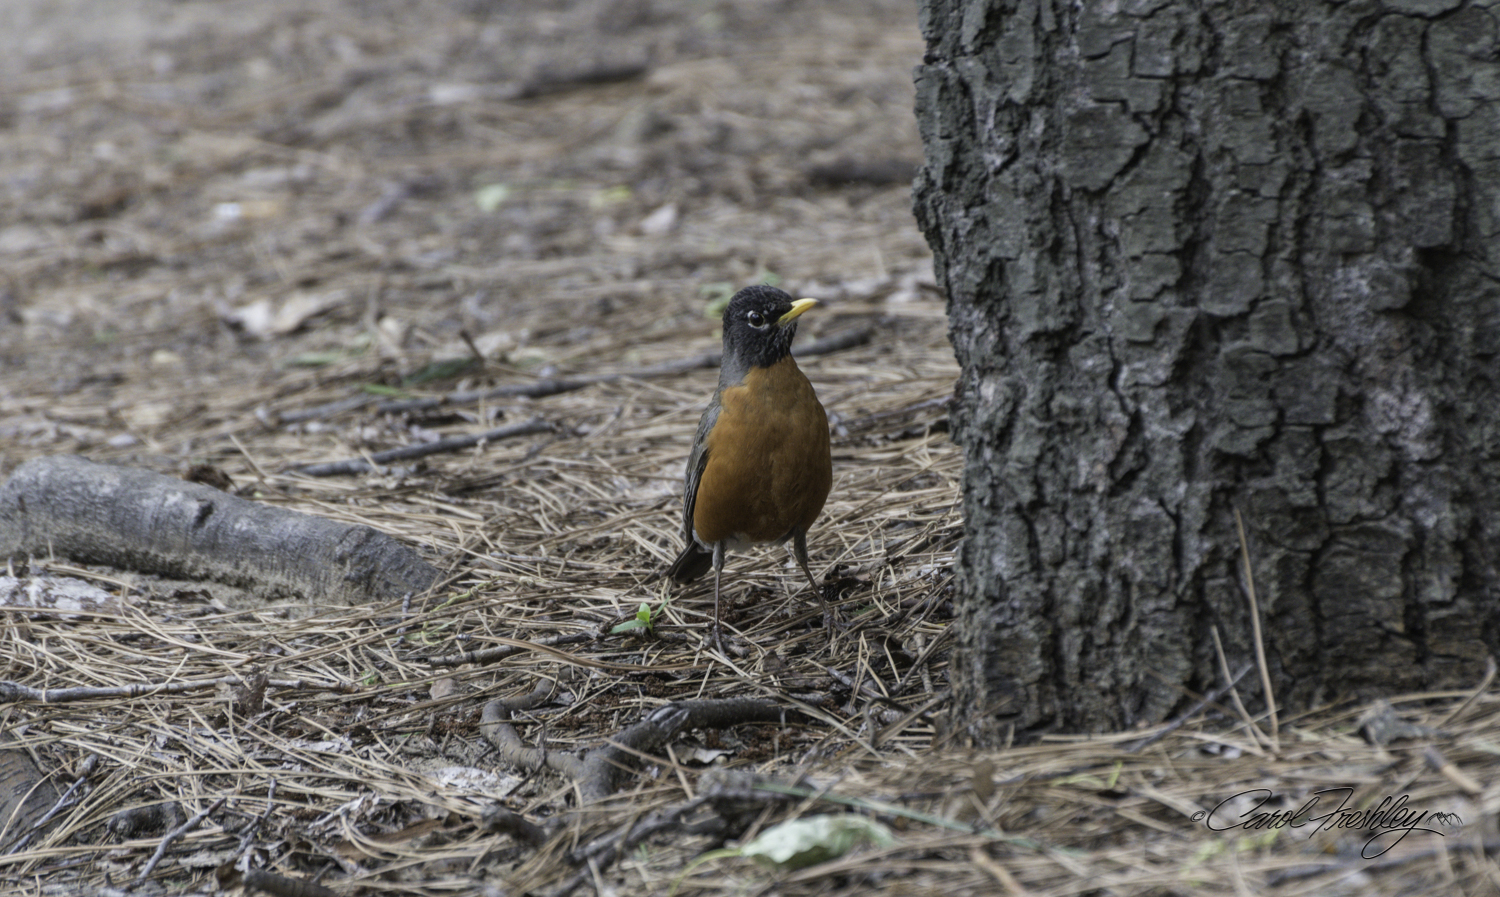 Male Northern America Robin.  His mate was nearby getting her cold bath in the Merced River.